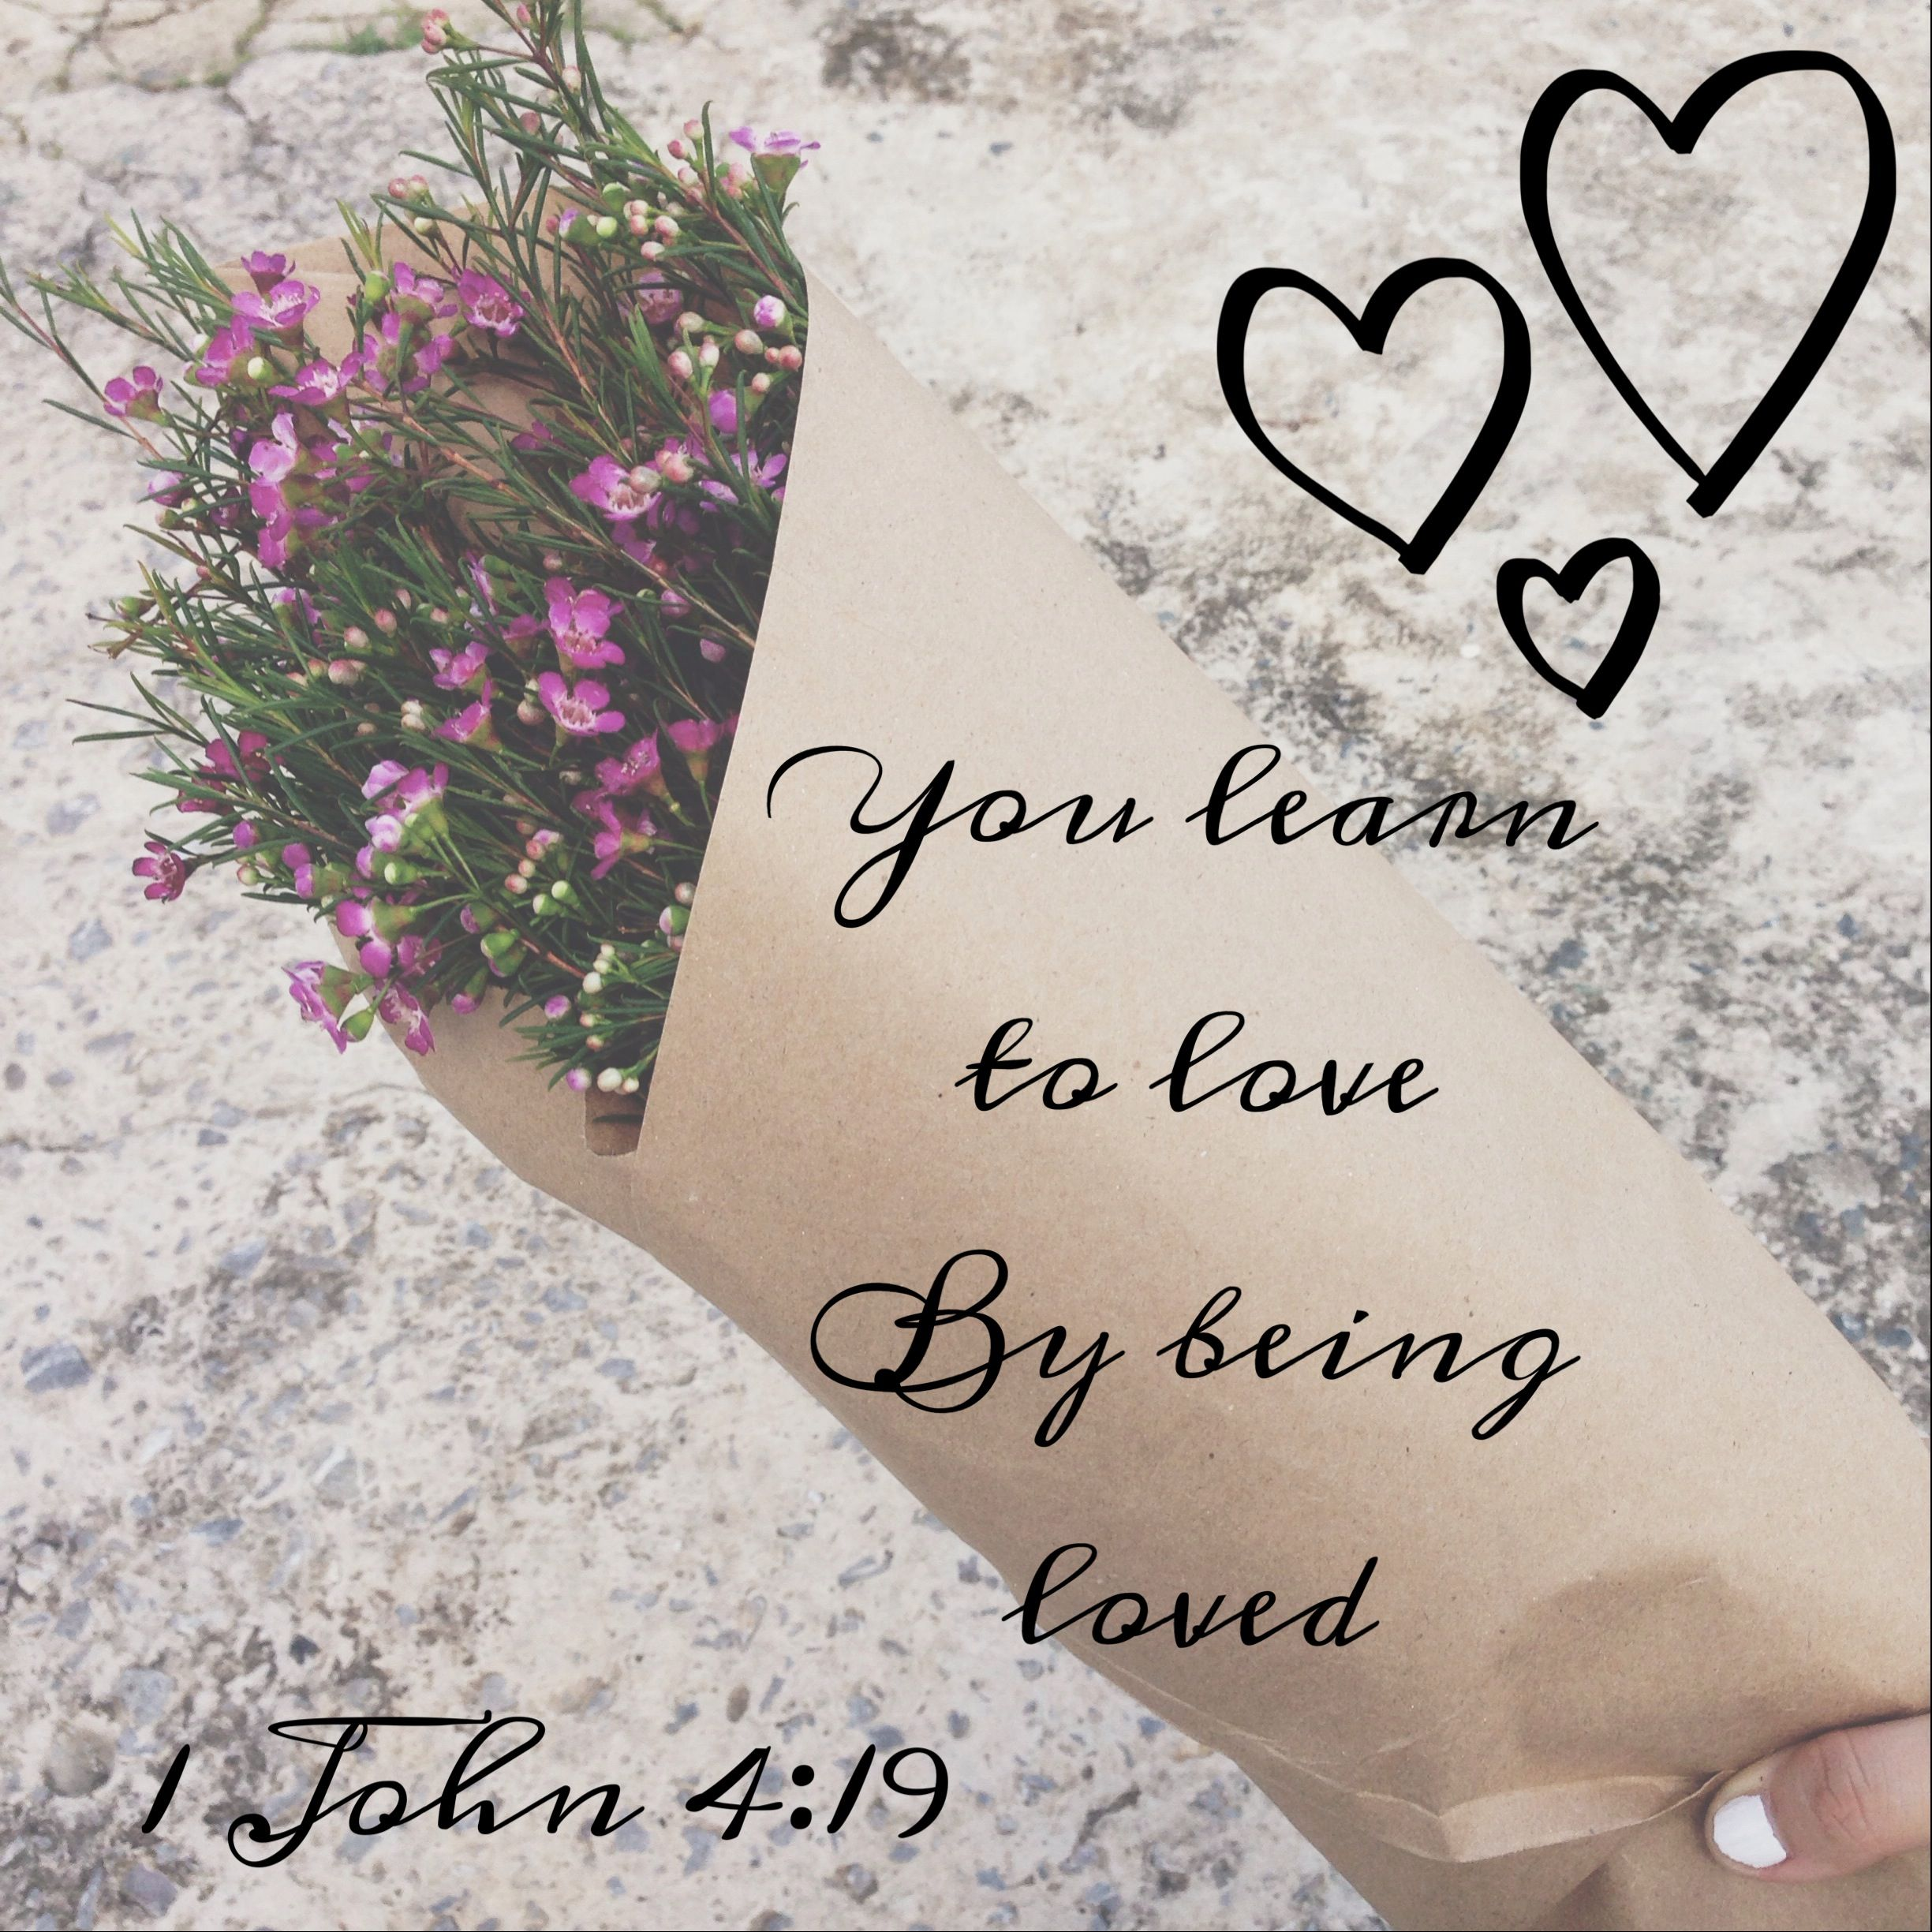 You Lear to love by being loved imspirational quote love More quotes